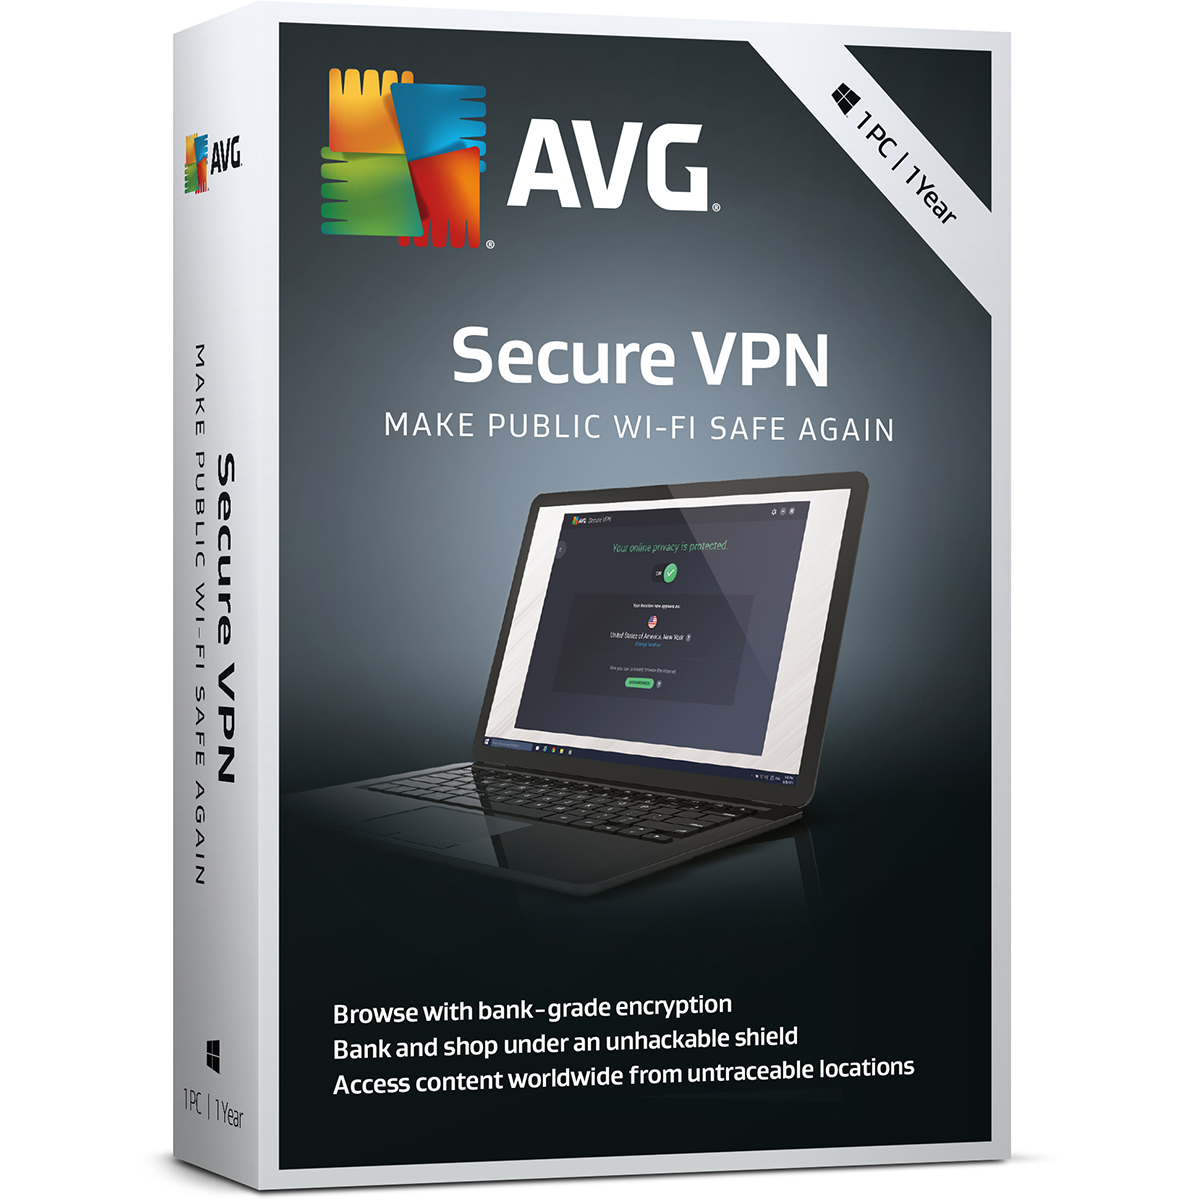 AVG Secure VPN 3 Years License ( 1 Active Connection at a time )